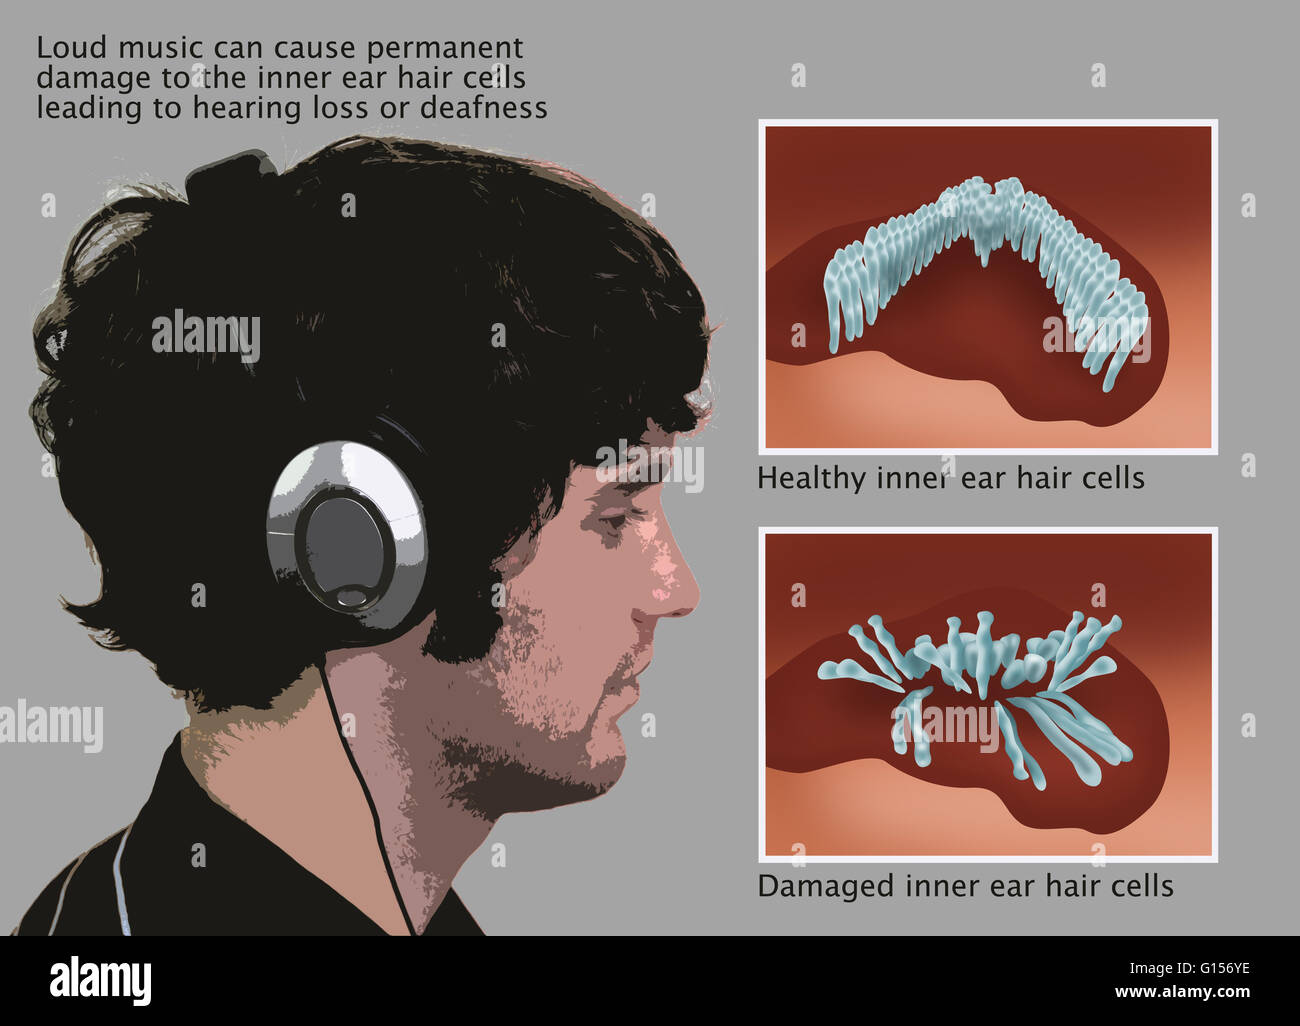 illustration of man in profile wearing noise-canceling headphones and inner ear  hair cells at